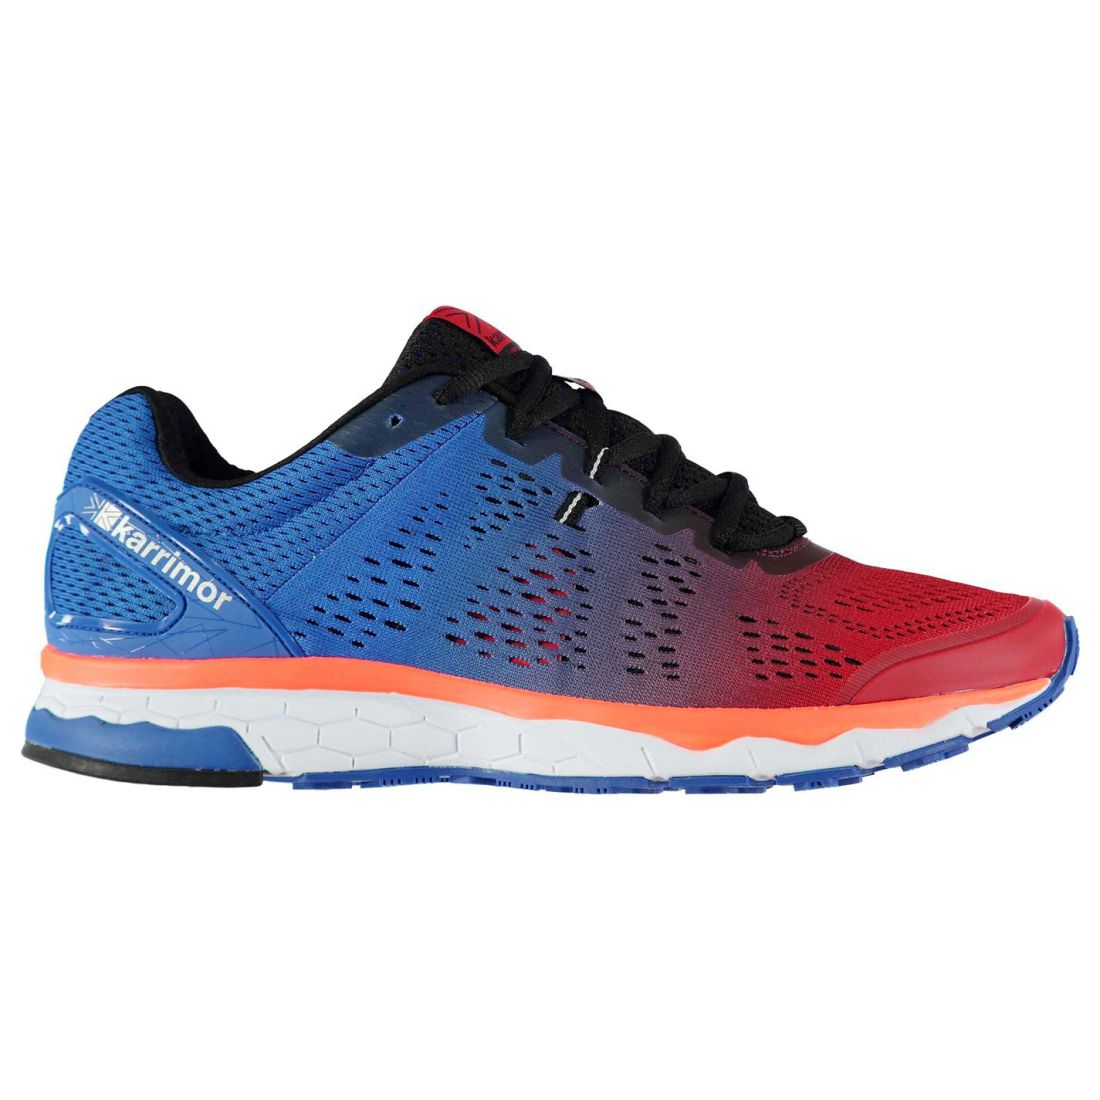 Karrimor Mens Tempo 5 Support Road Running Shoes Trainers Lace Up Breathable